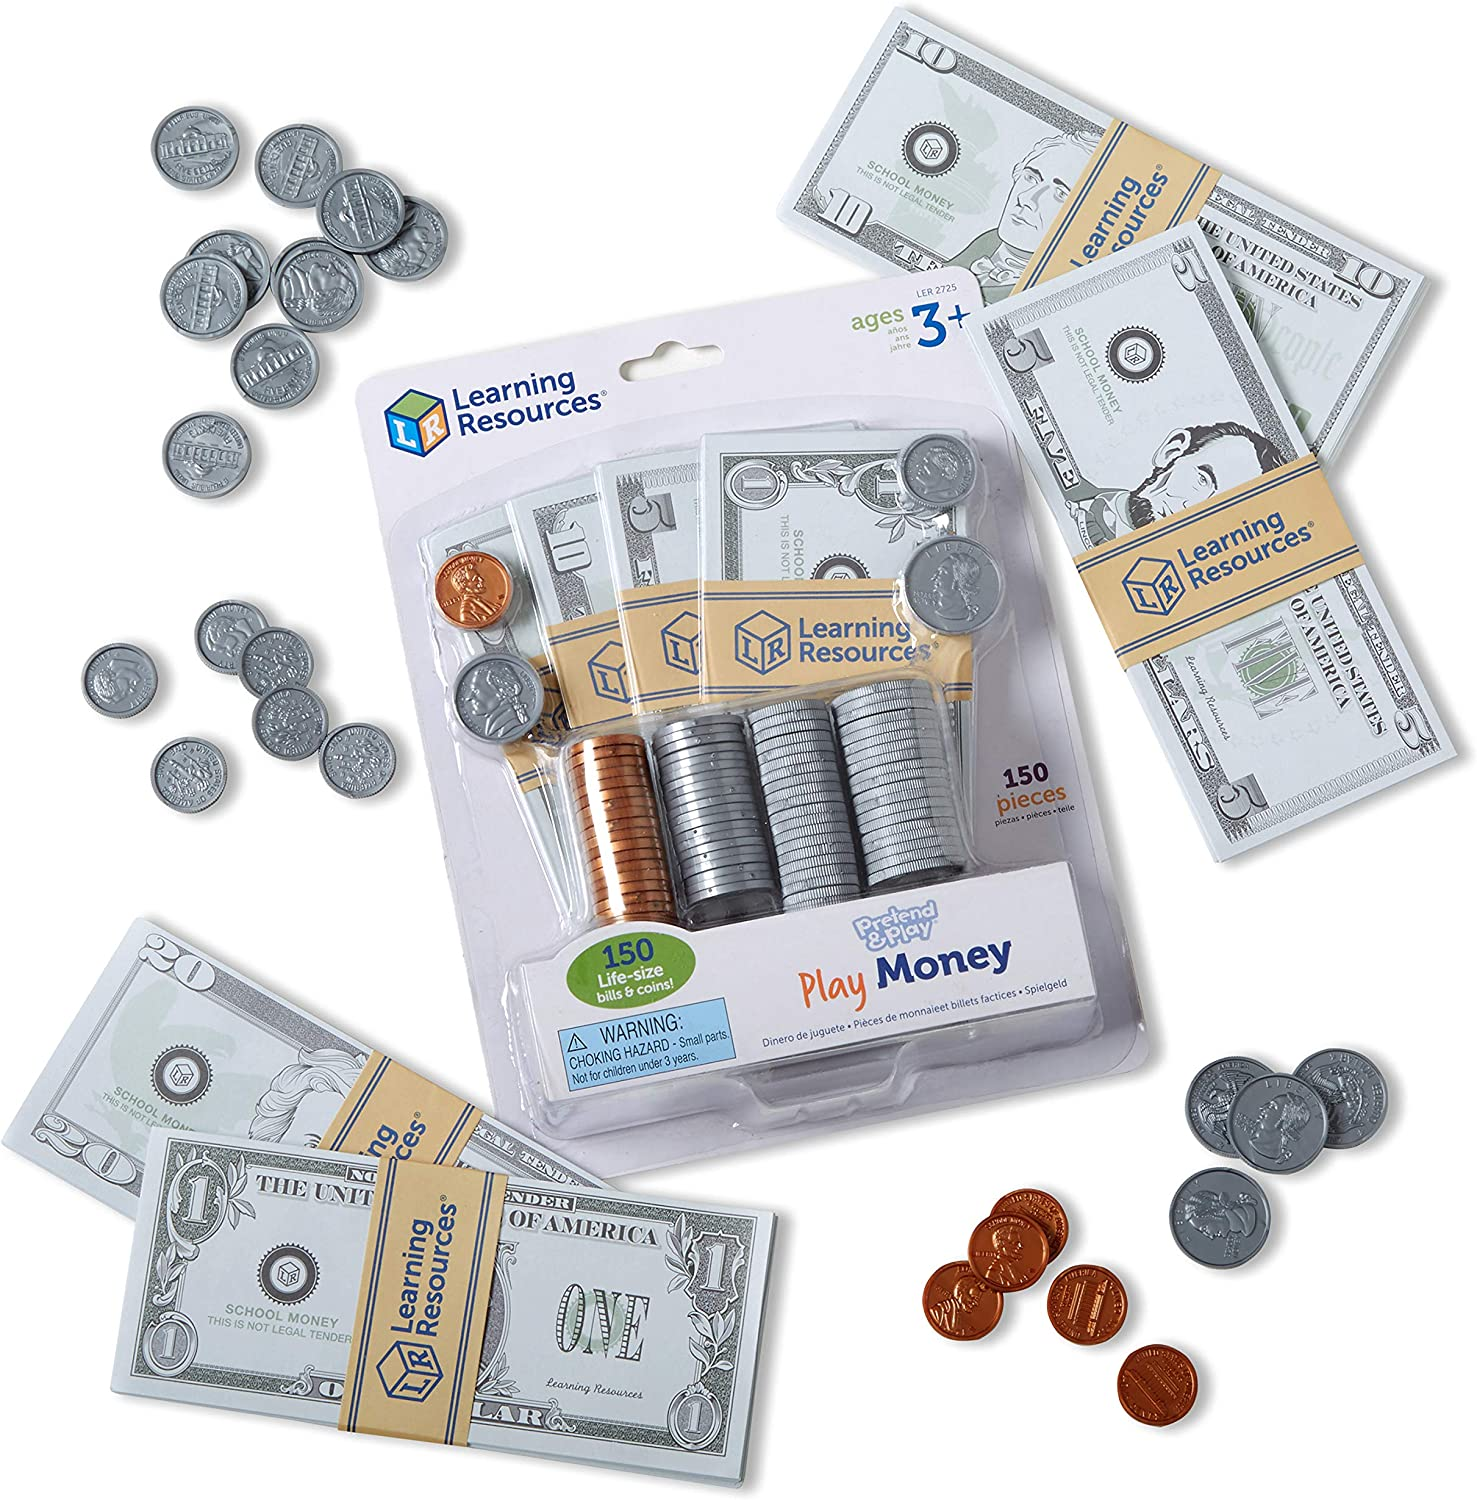 Learning Resources Pretend and Play, Play Money for Kids, Counting, Math, Currency, 150 Pieces, Easter Gifts for Kids, Ages 3+